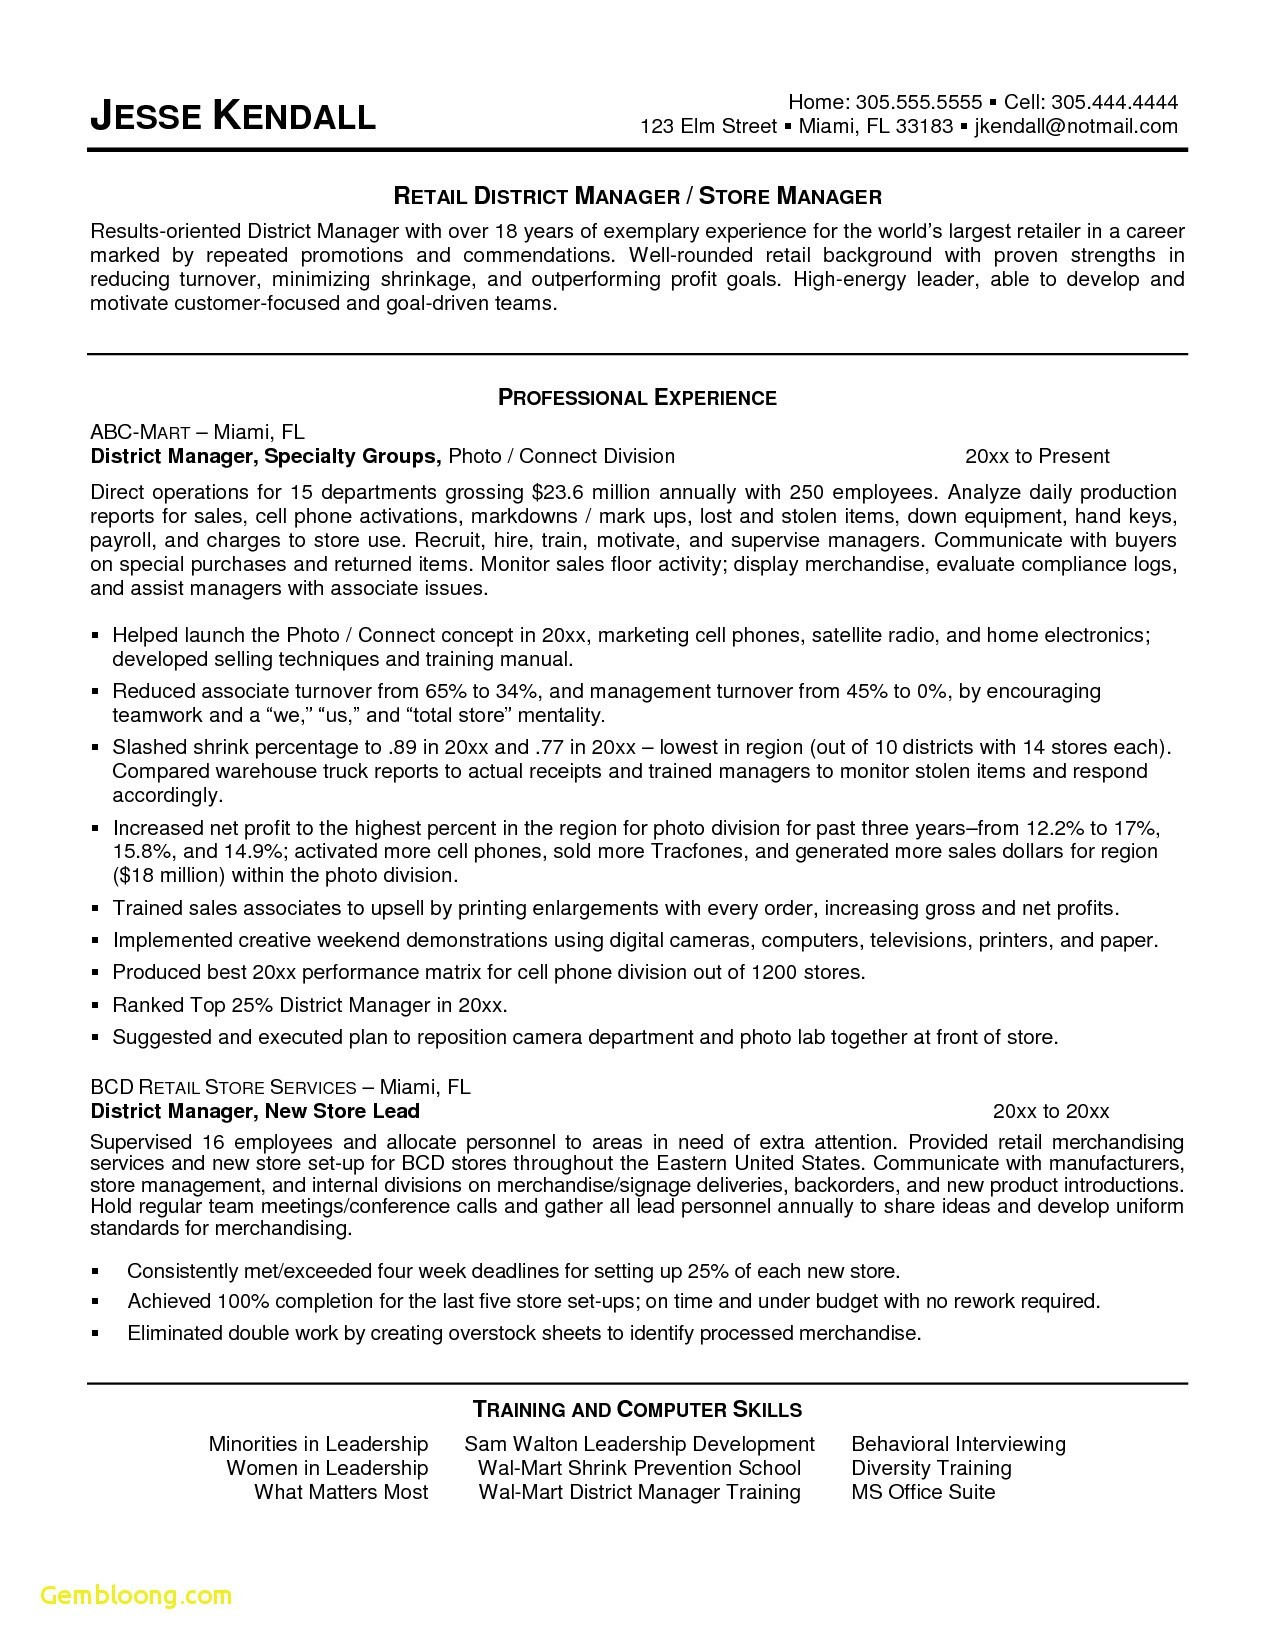 food service manager resume Collection-Customer Service Manager Resume Unique Fresh Grapher Resume Sample Beautiful Resume Quotes 0d Bar Manager 17-m